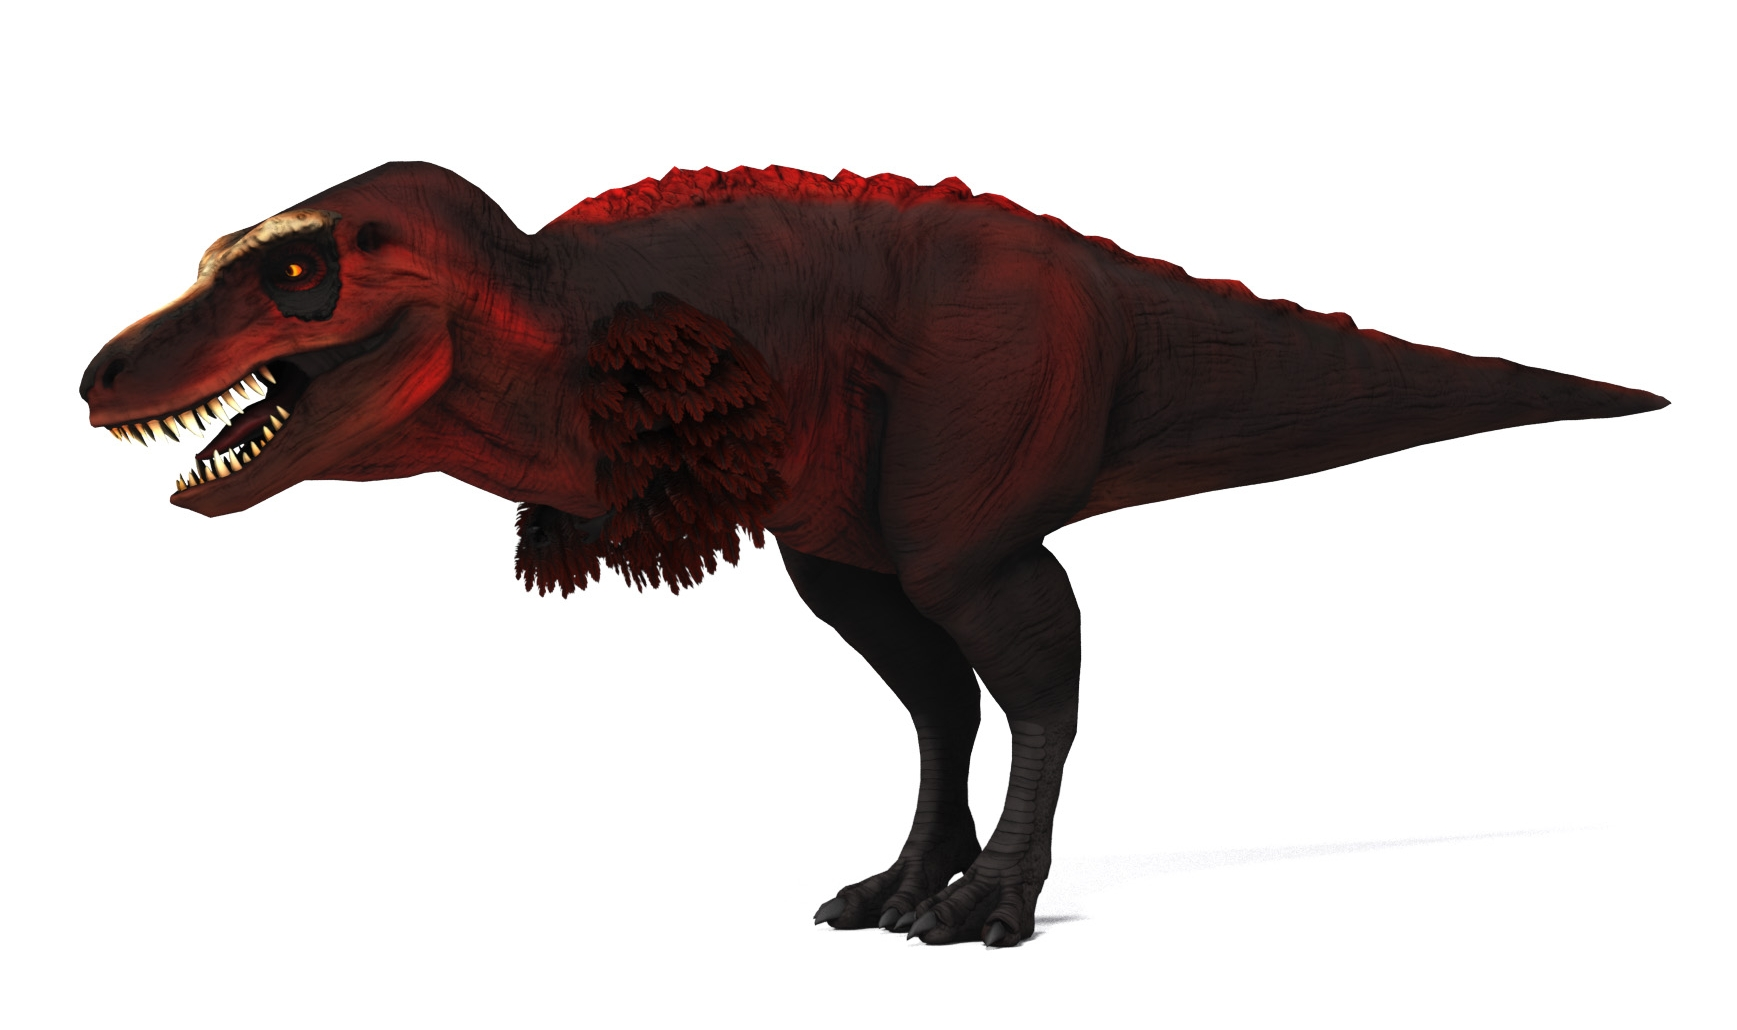 Intimidating Tyranasaurus with keratin face plate, feathered arms, and small fleshy backbone frill.